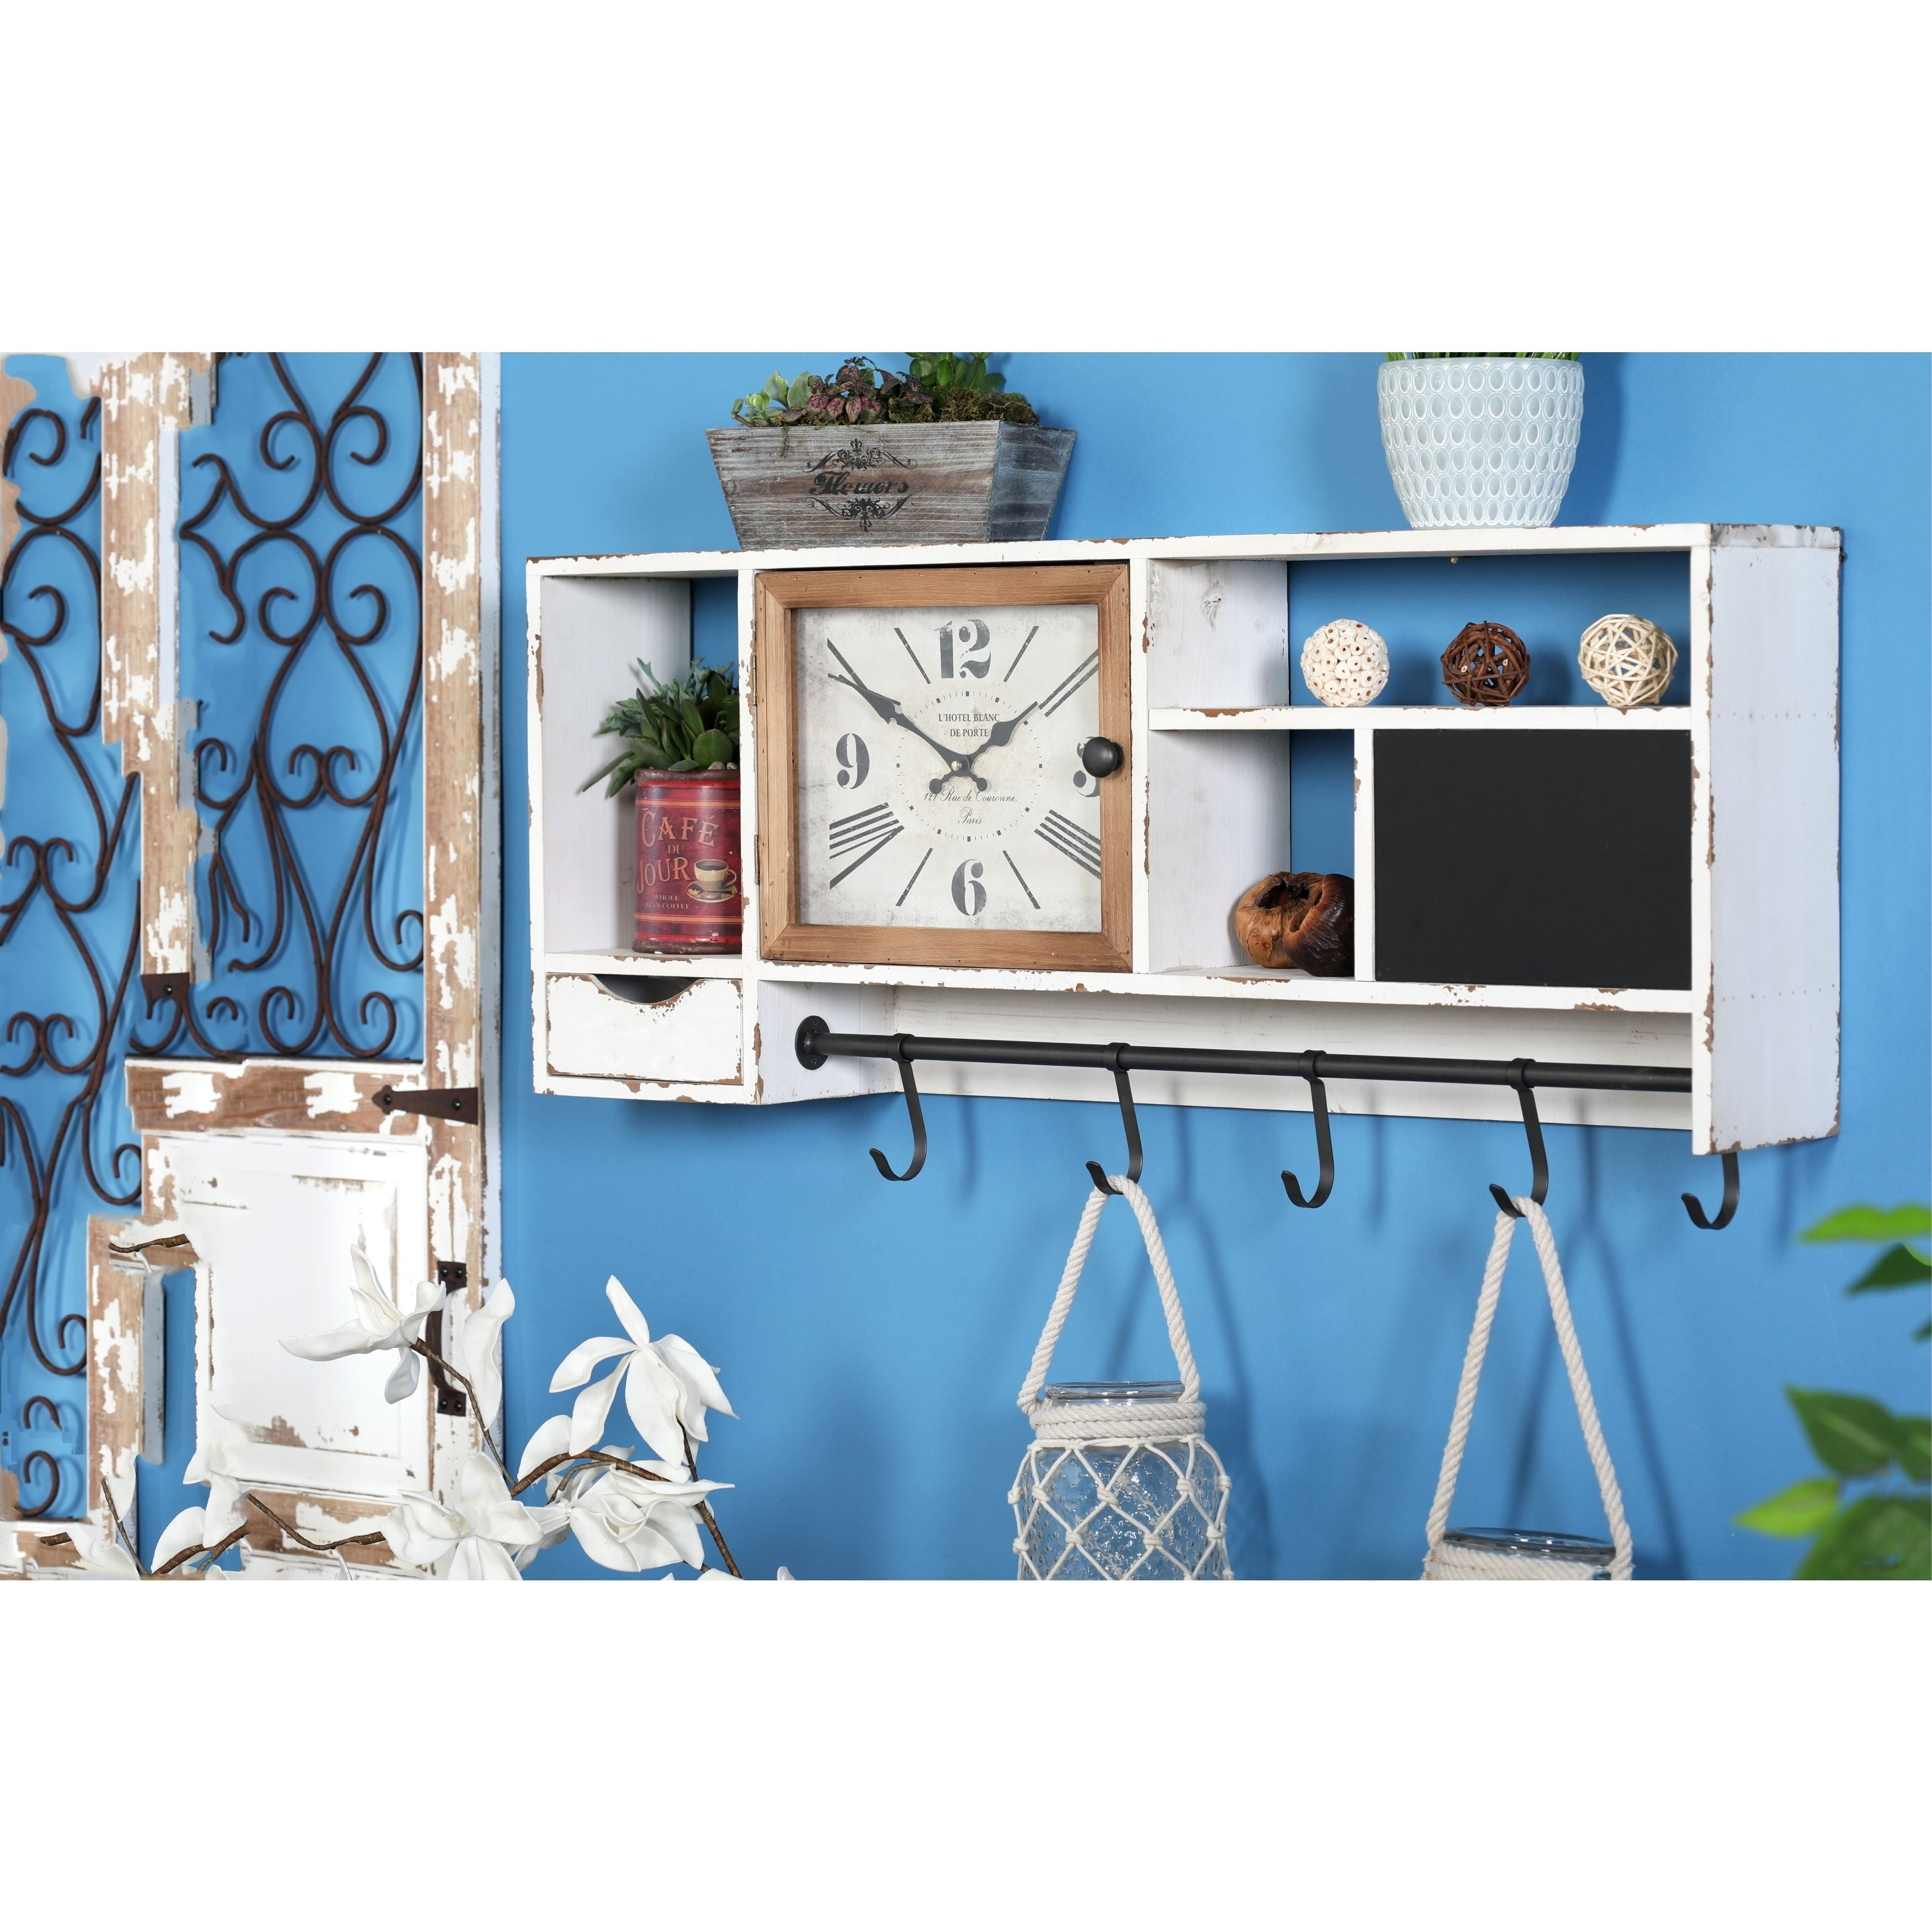 Shop Rustic Wall Clock with Multi-Purpose Shelves and Hooks - On ...